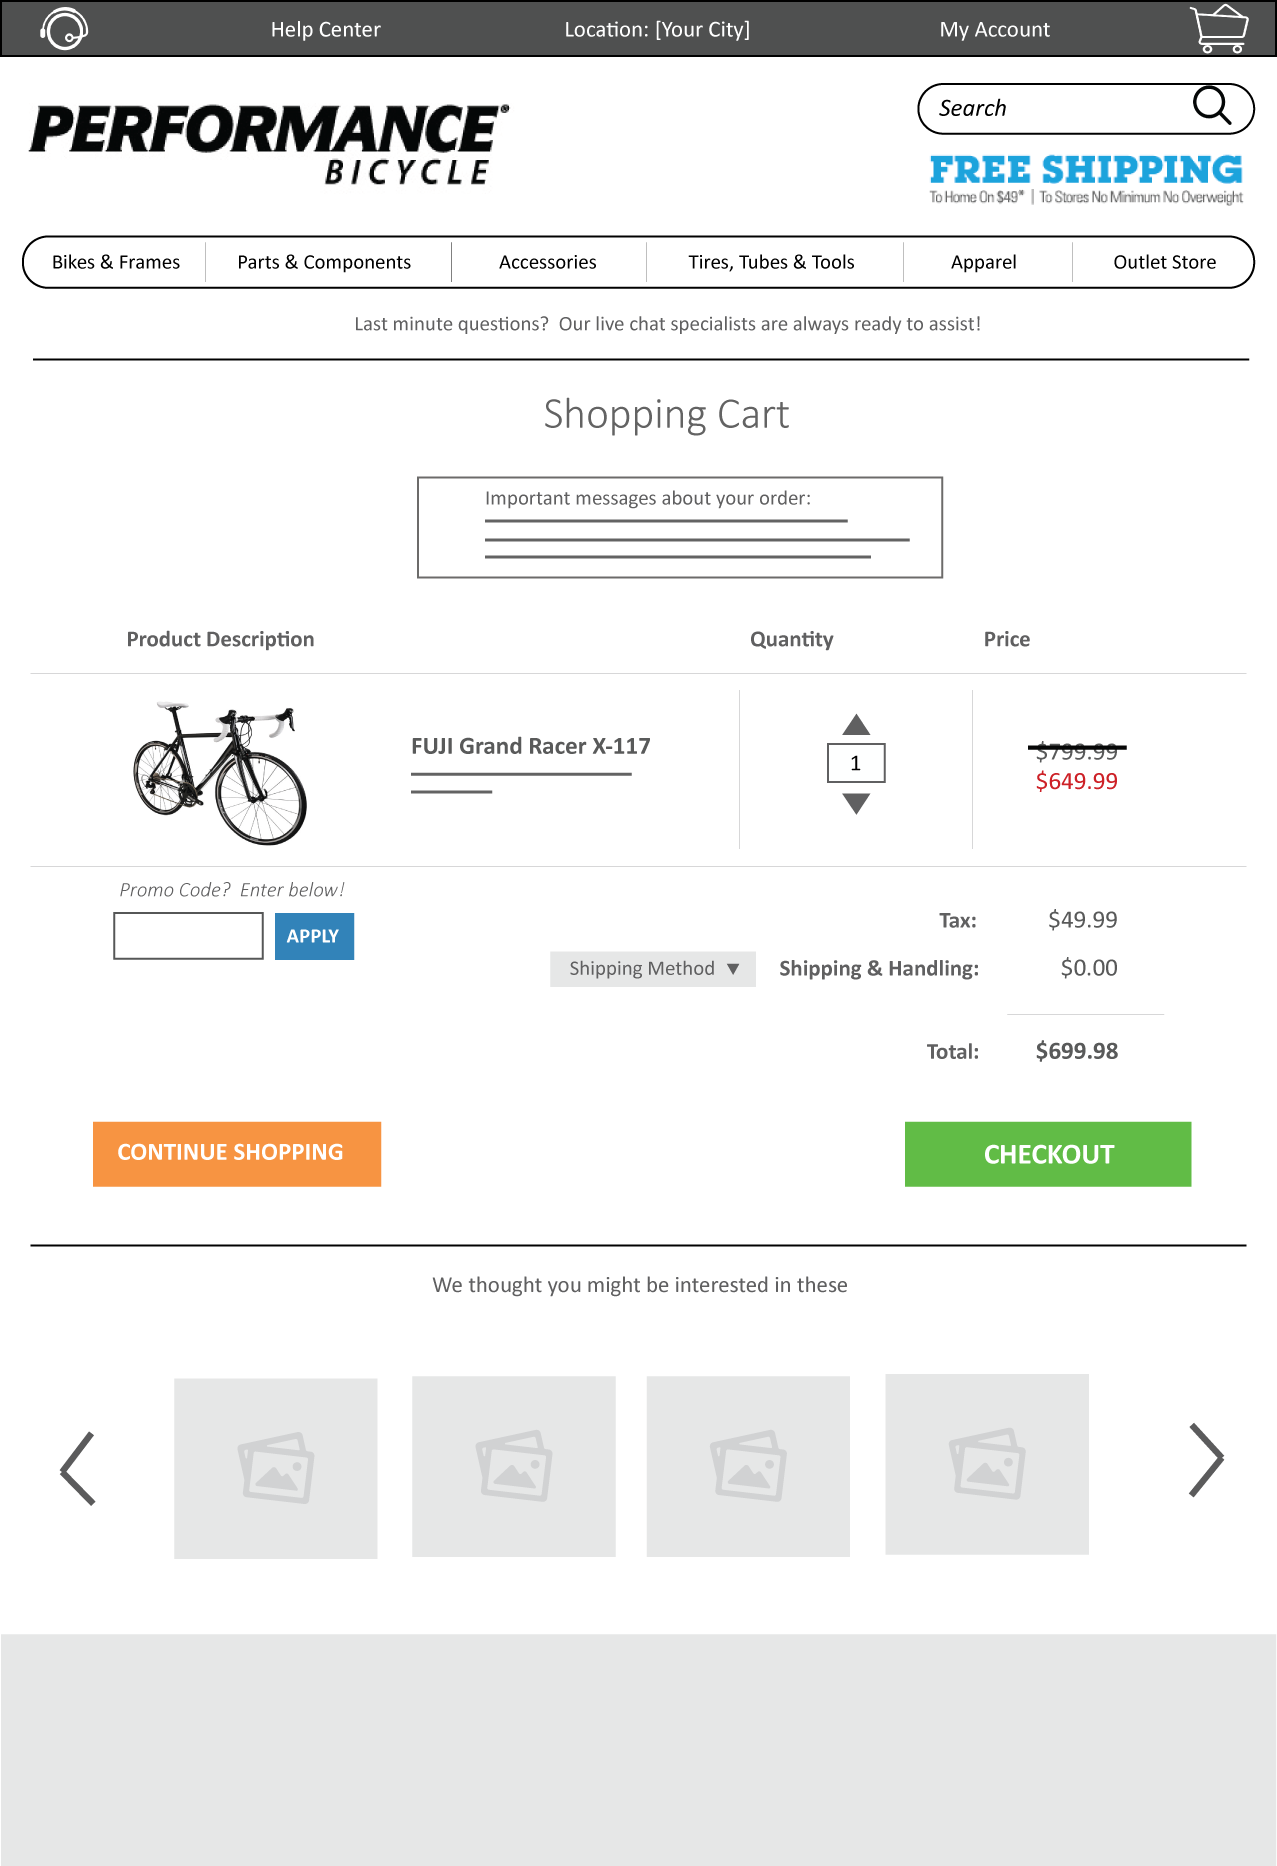 The  Shopping Cart  page is cleaned up, offering only relevant information that the user needs without being bombarded by too much noise.